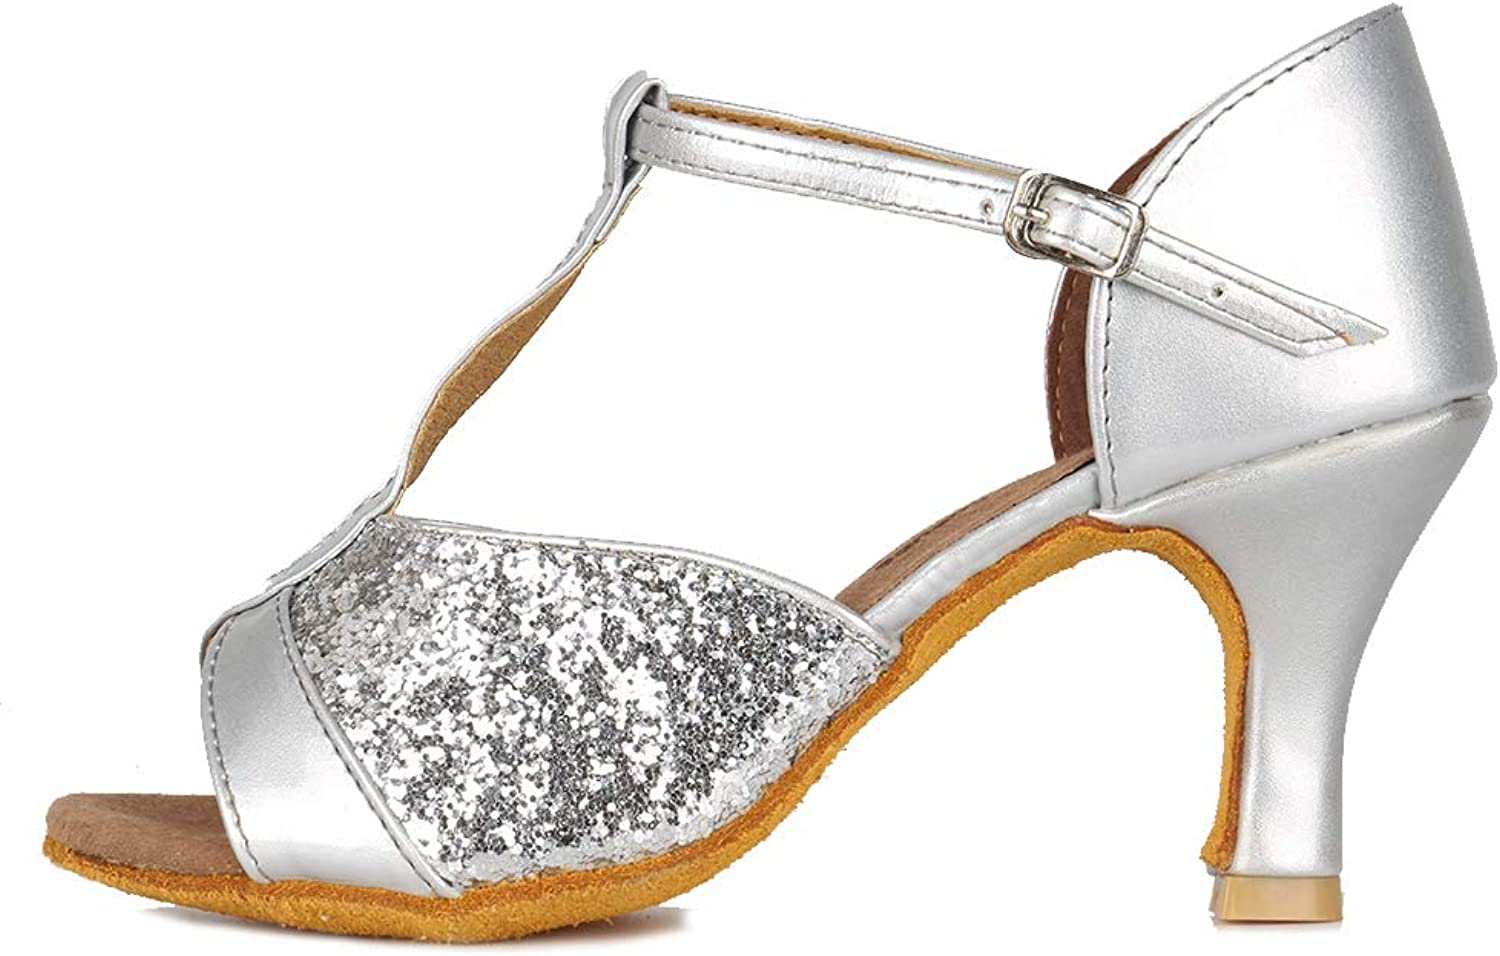 00afd7c67 HIPPOSEUS Women's Standard Latin Dance shoes t Strap Classical Ballroom  Dancing shoes with Sequins,Silver